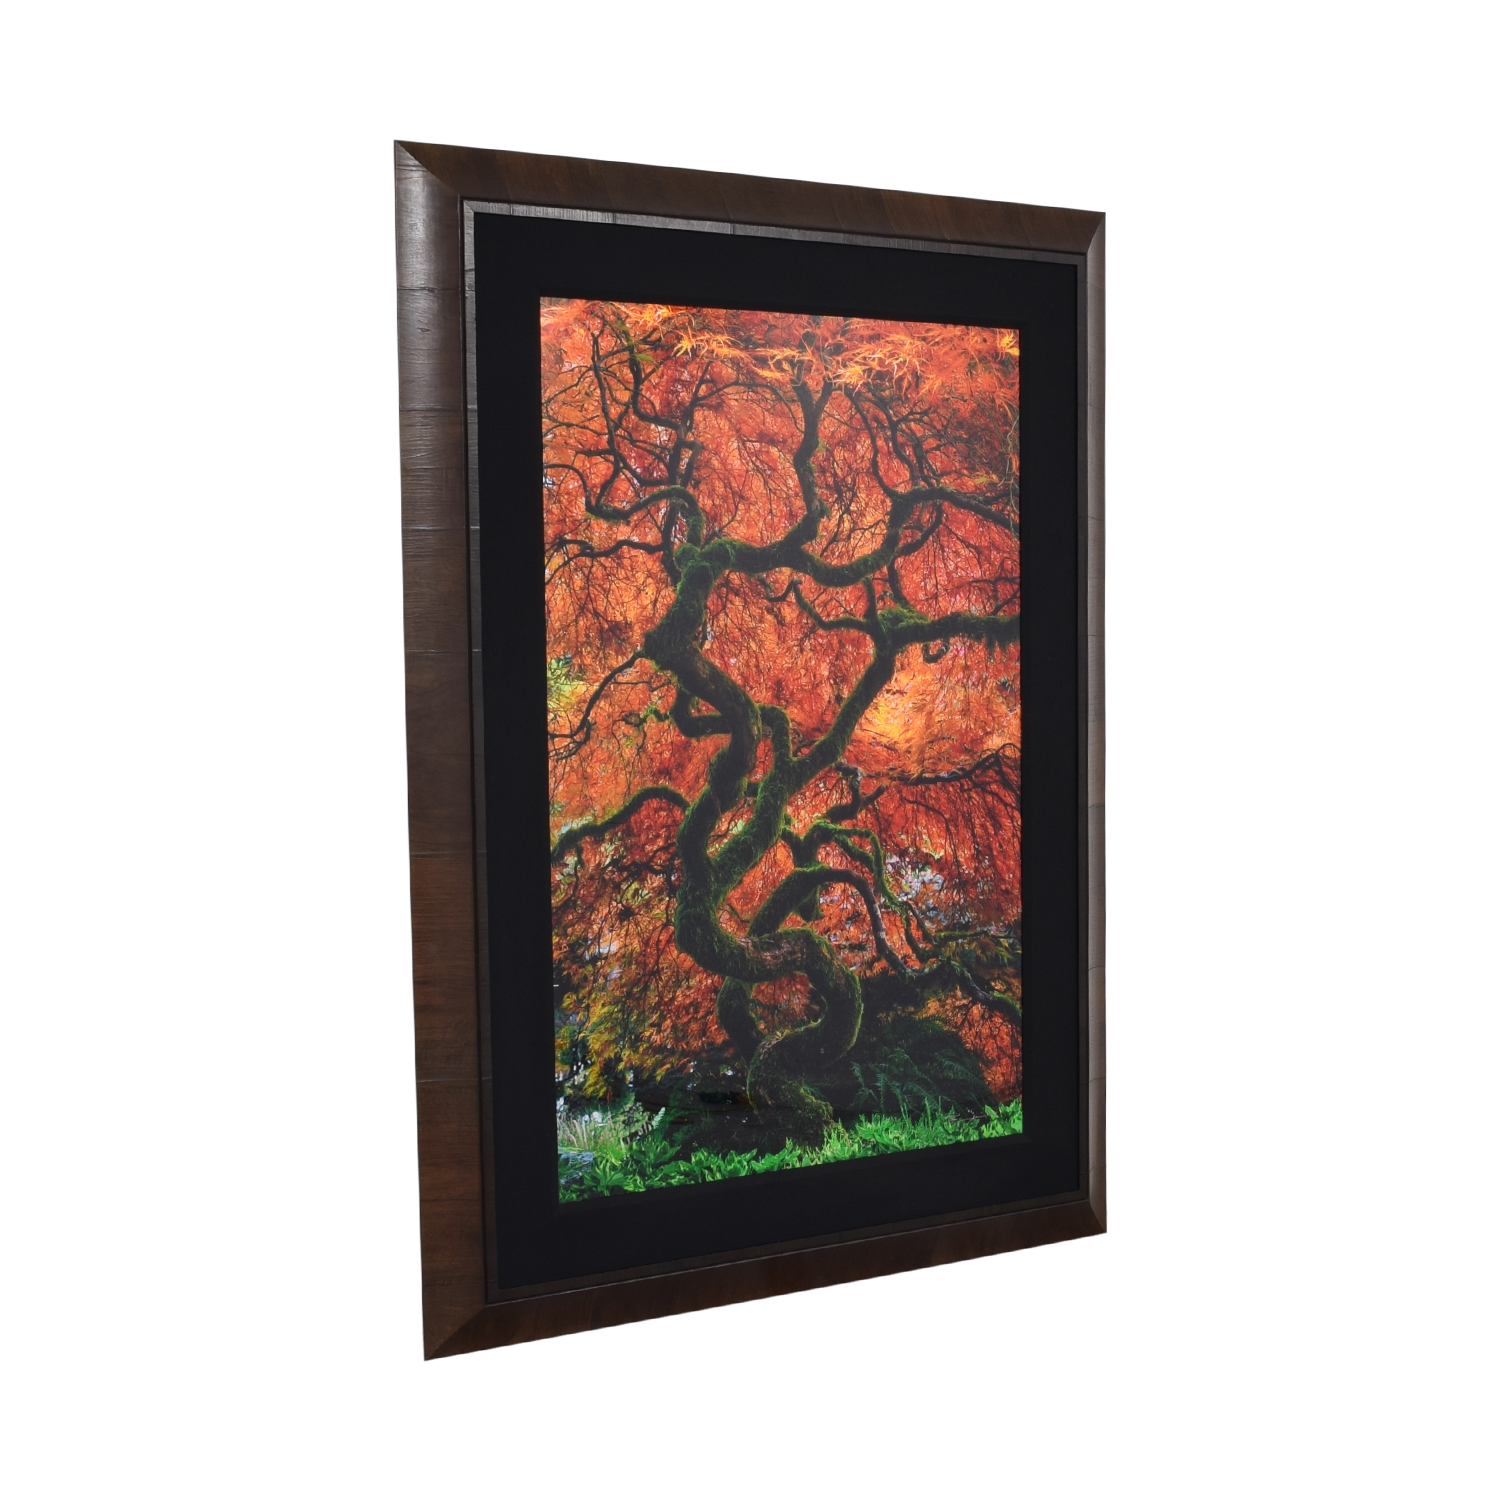 buy  Peter Lik Infinity Tree Framed Wall Art online